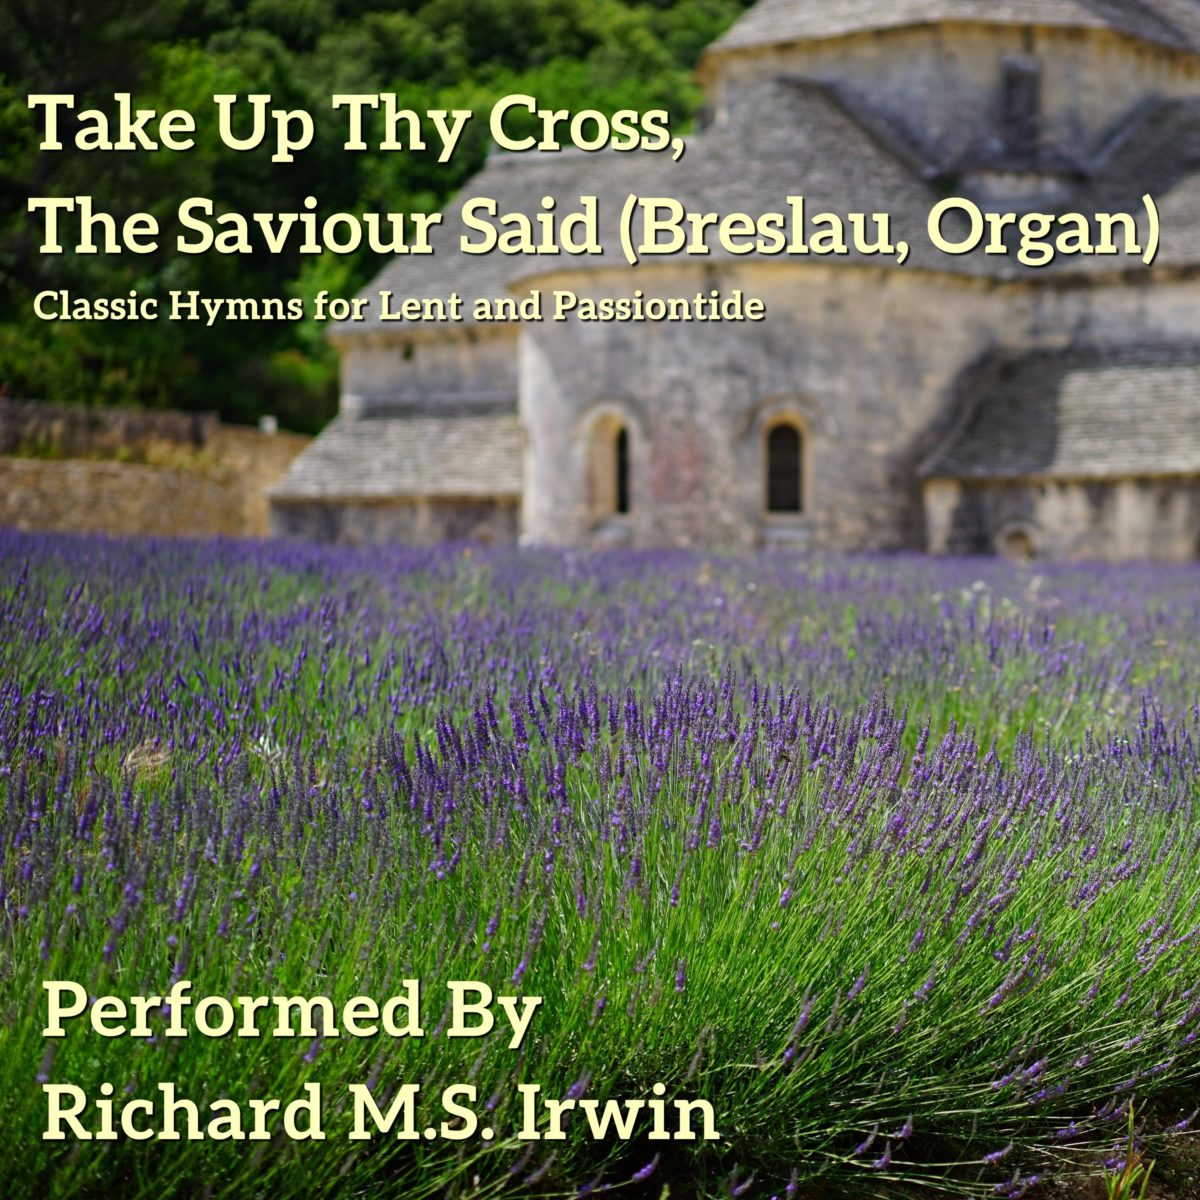 Take Up Thy Cross, The Saviour Said (Breslau, Organ, 6 Verses)